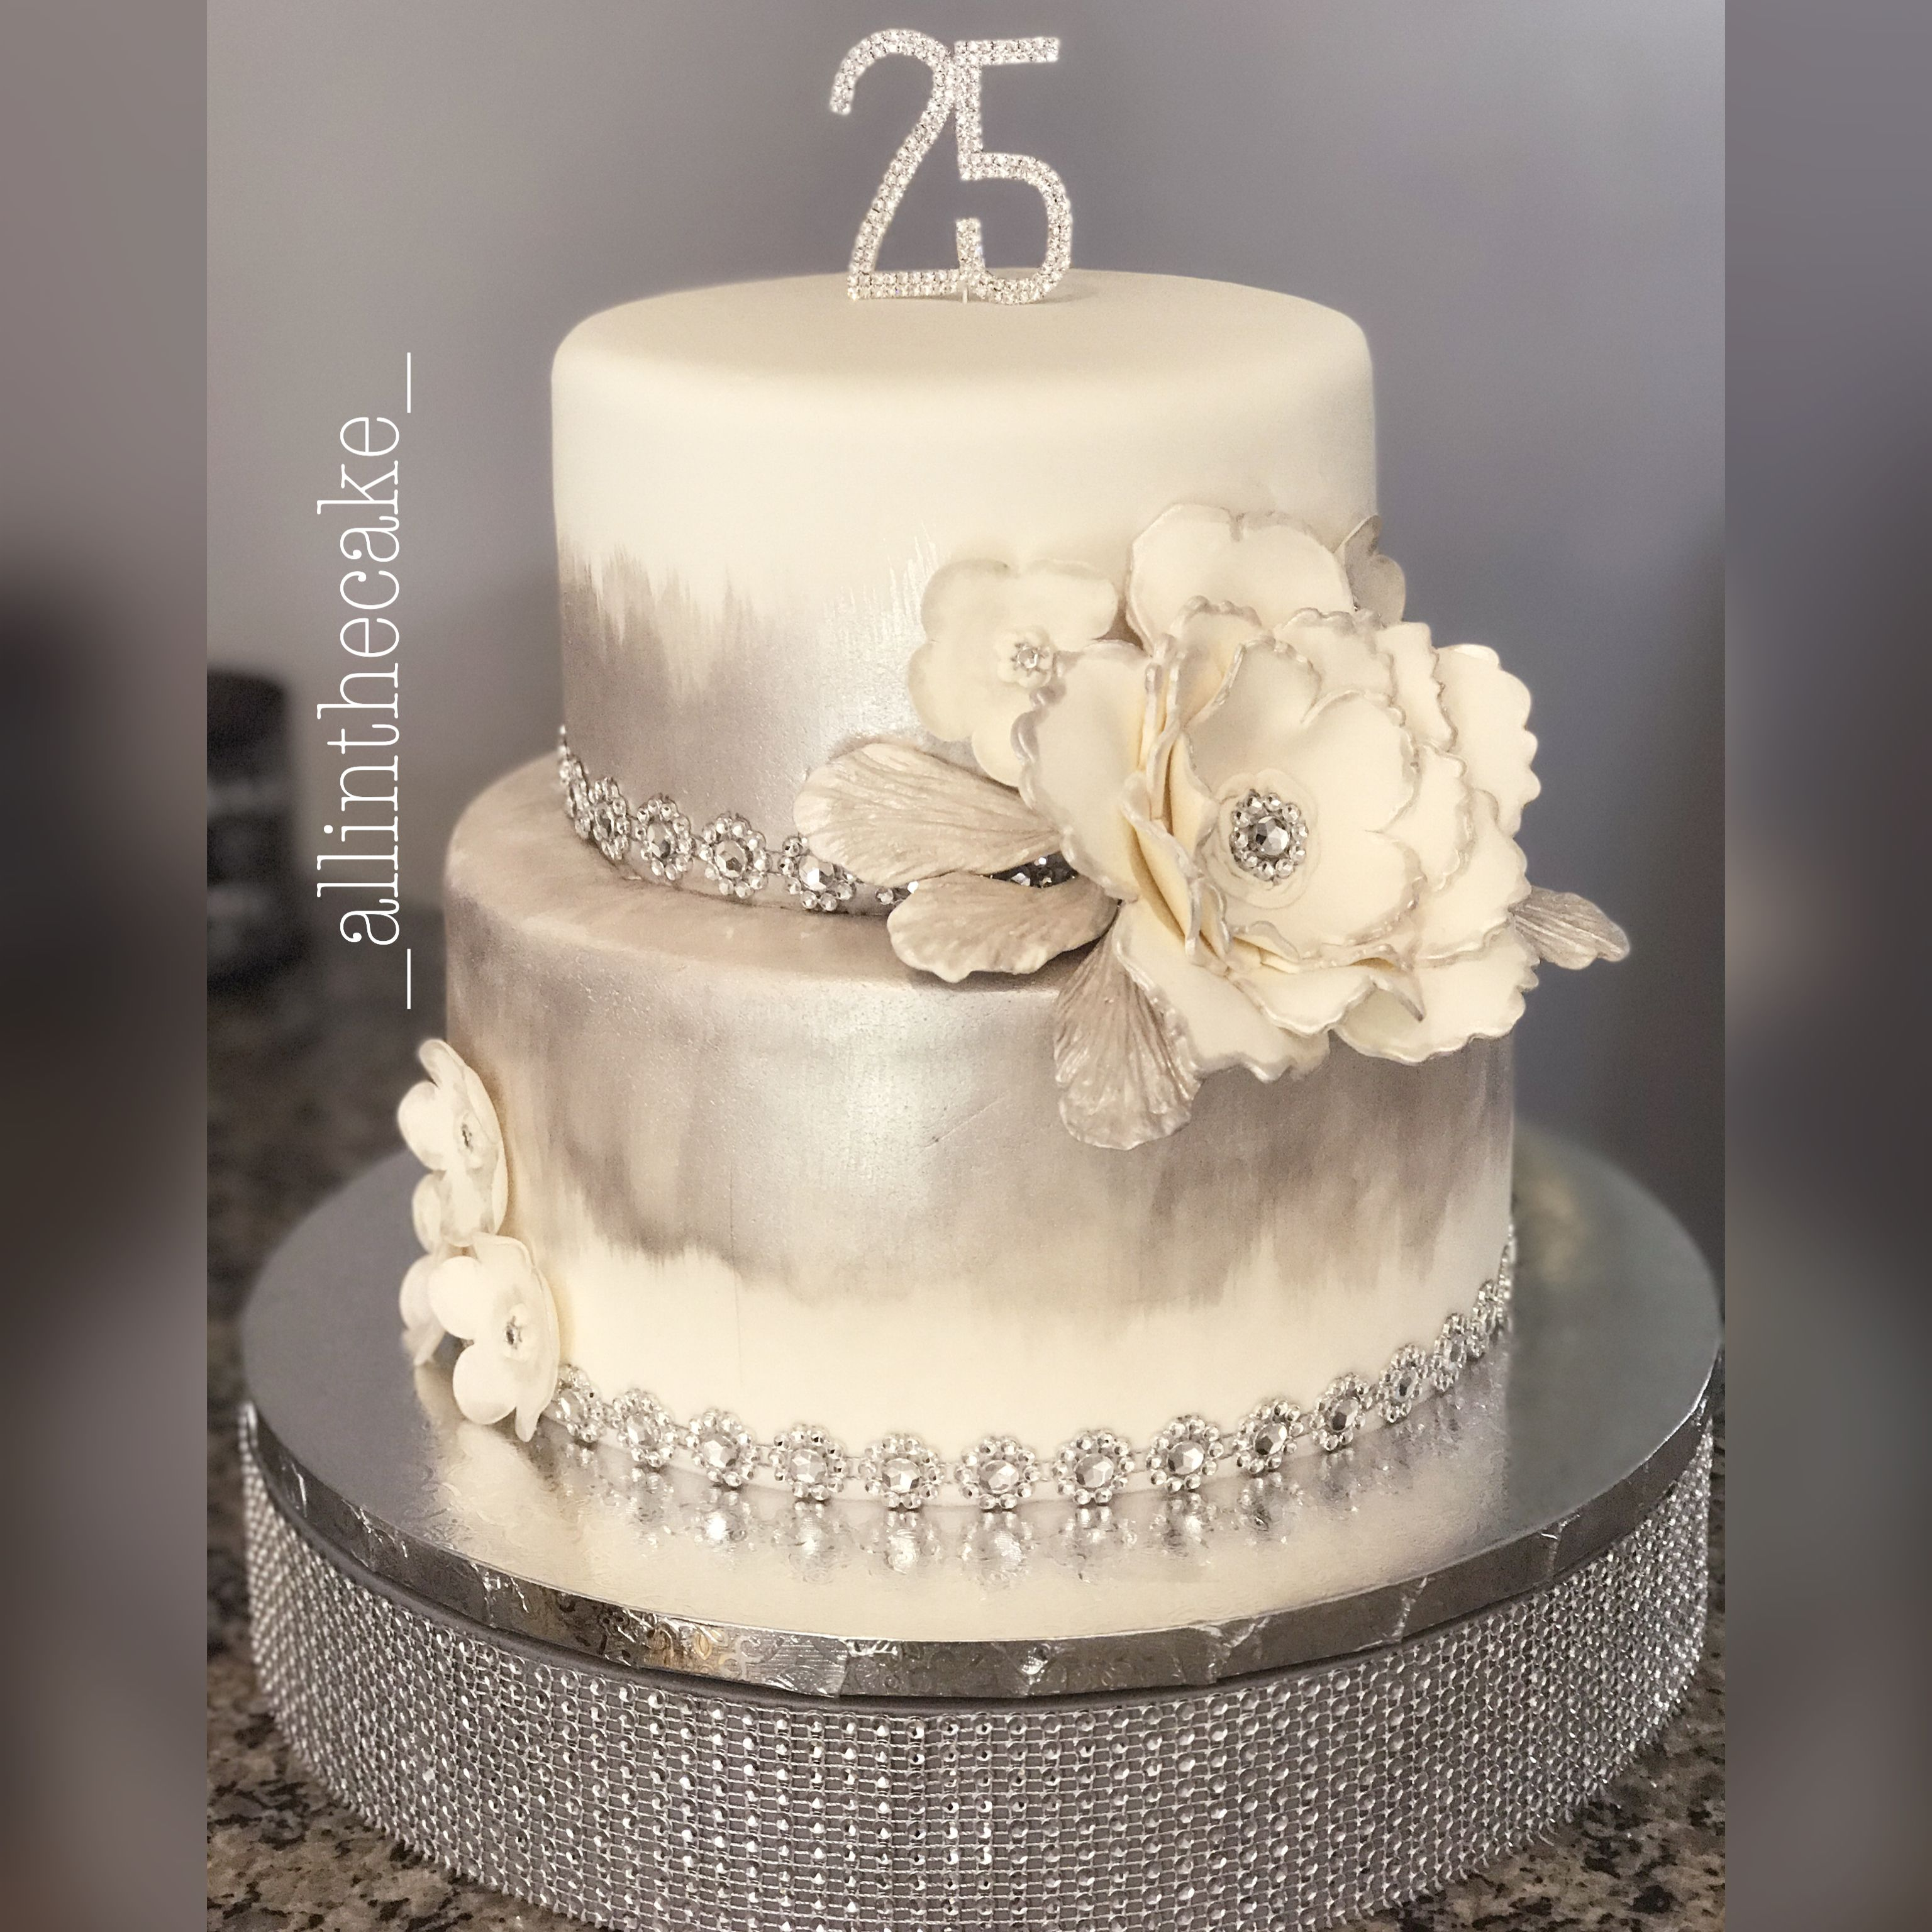 25th Silver Wedding Anniversary cake | All in the cake | Pinterest ...